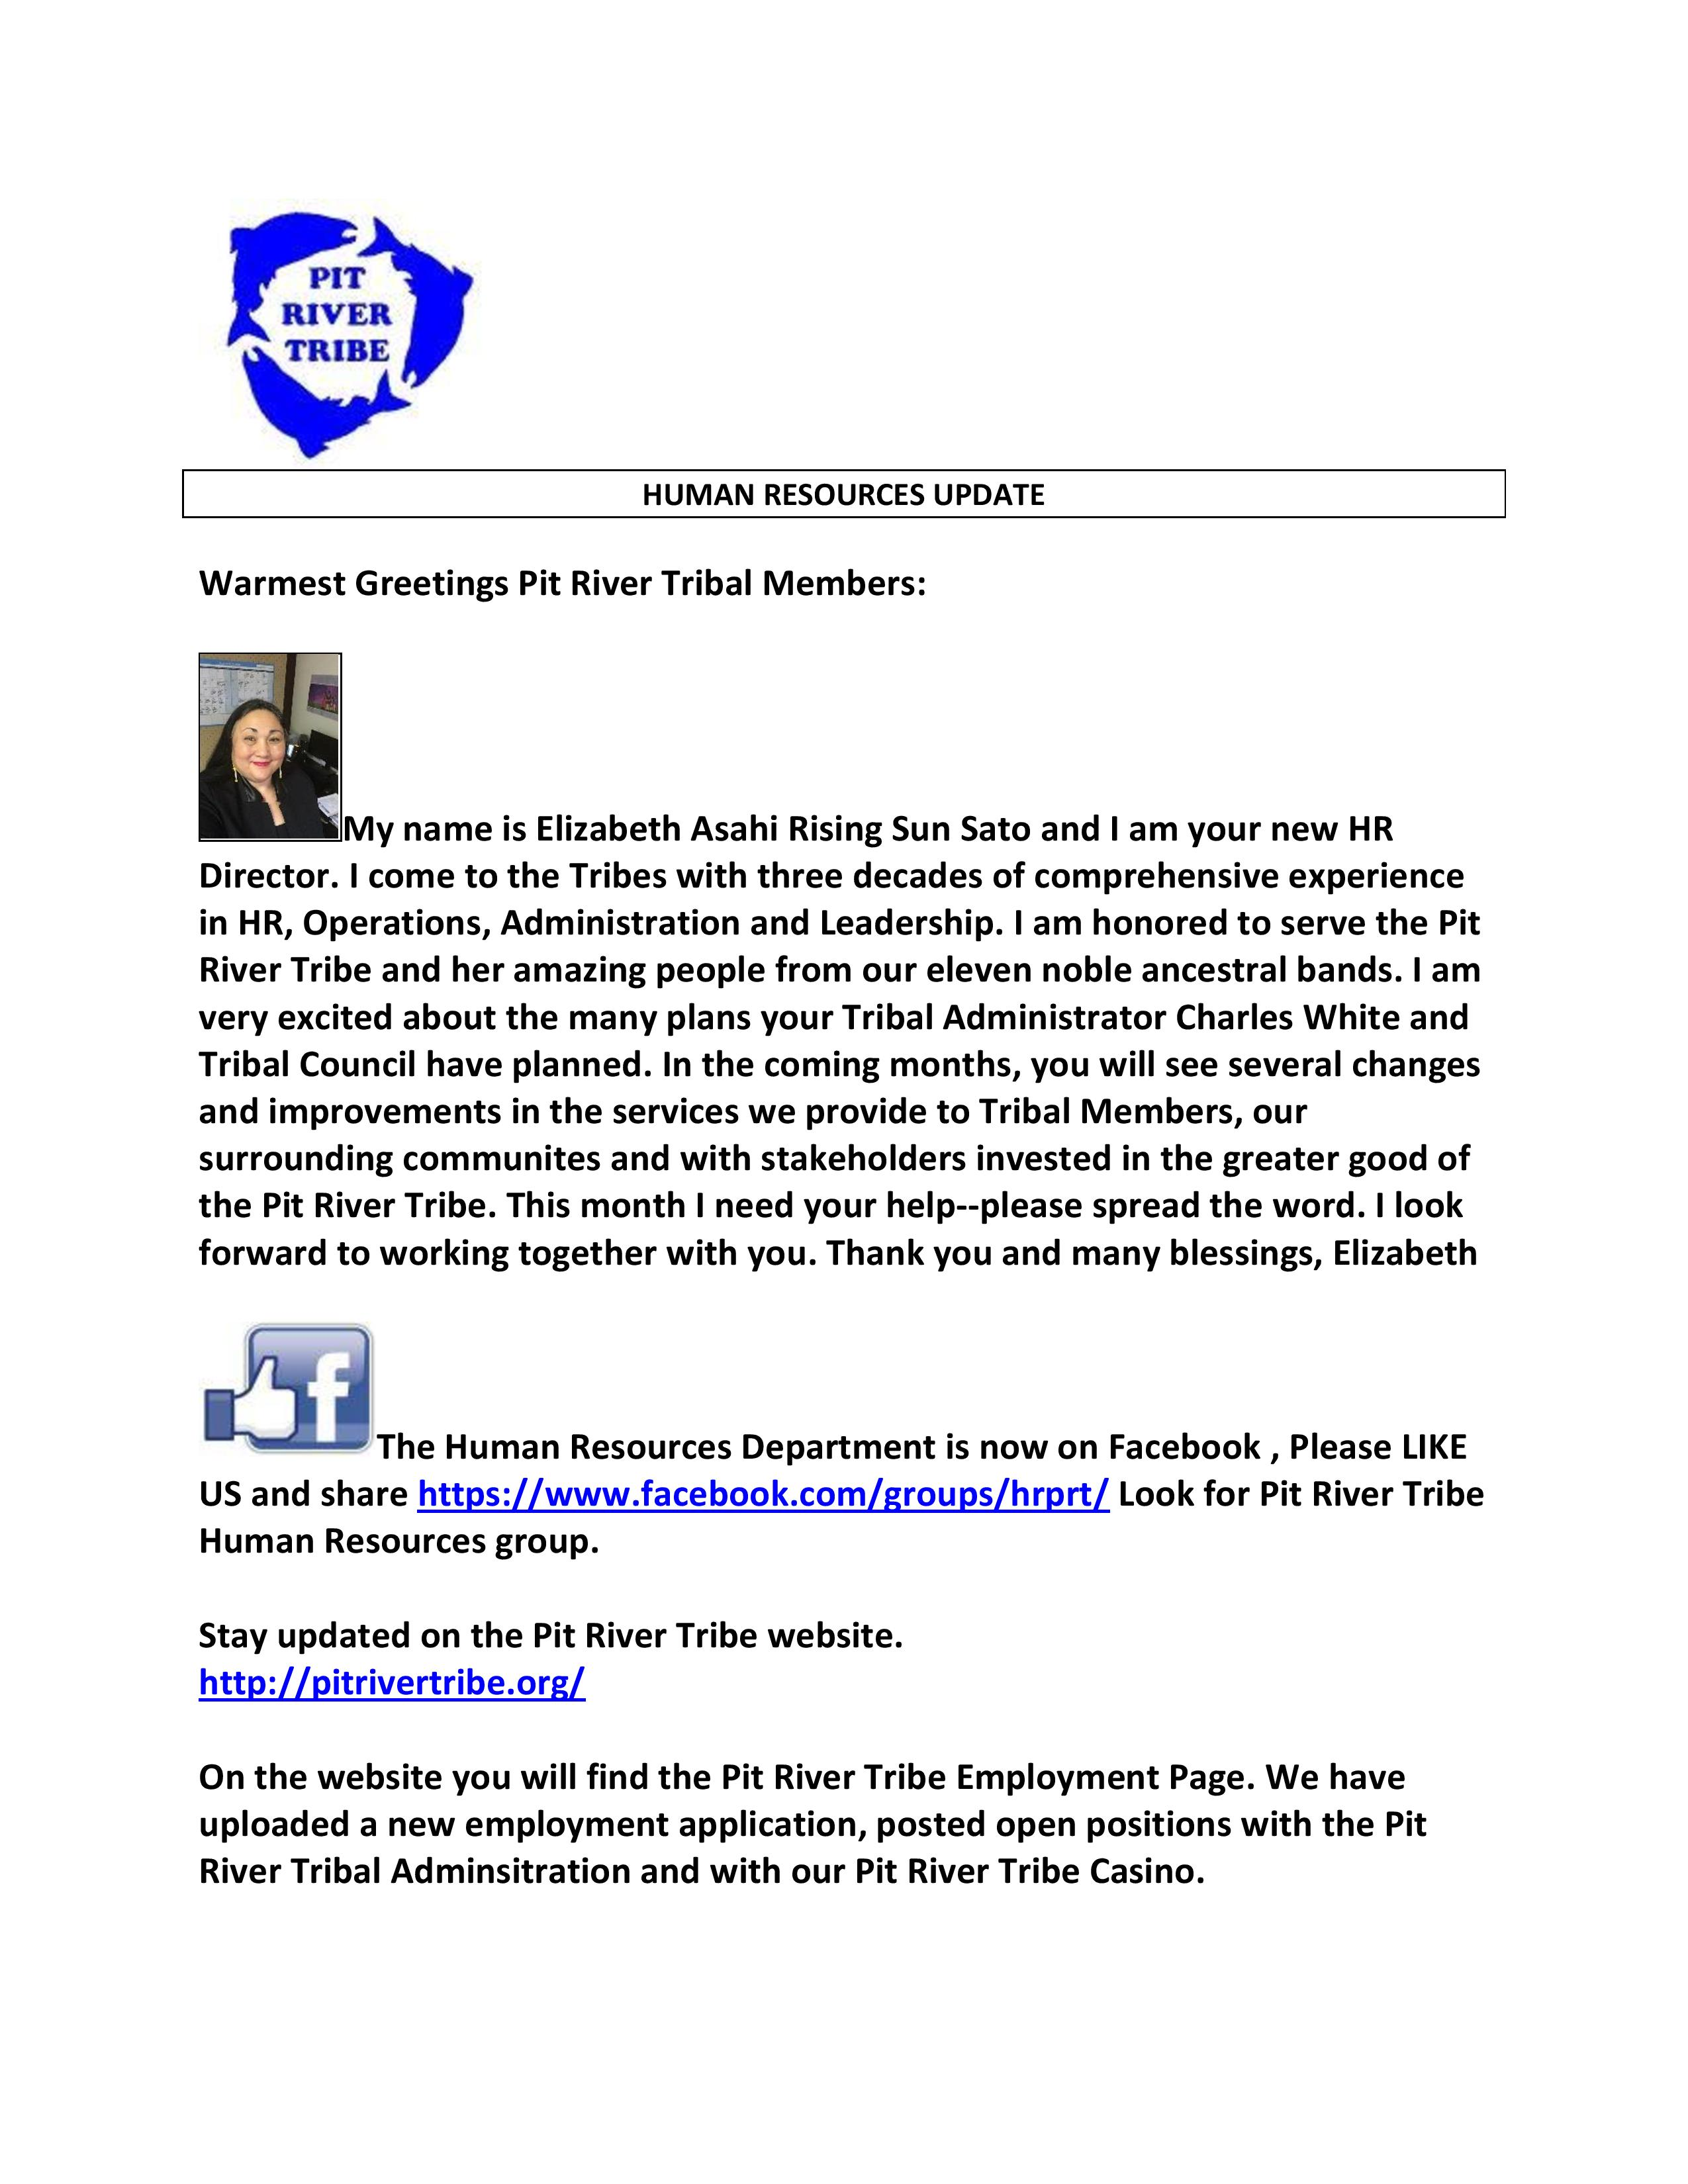 HUMAN RESOURCES UPDATE 4-18-2018-page-001 – Official Home of the Pit